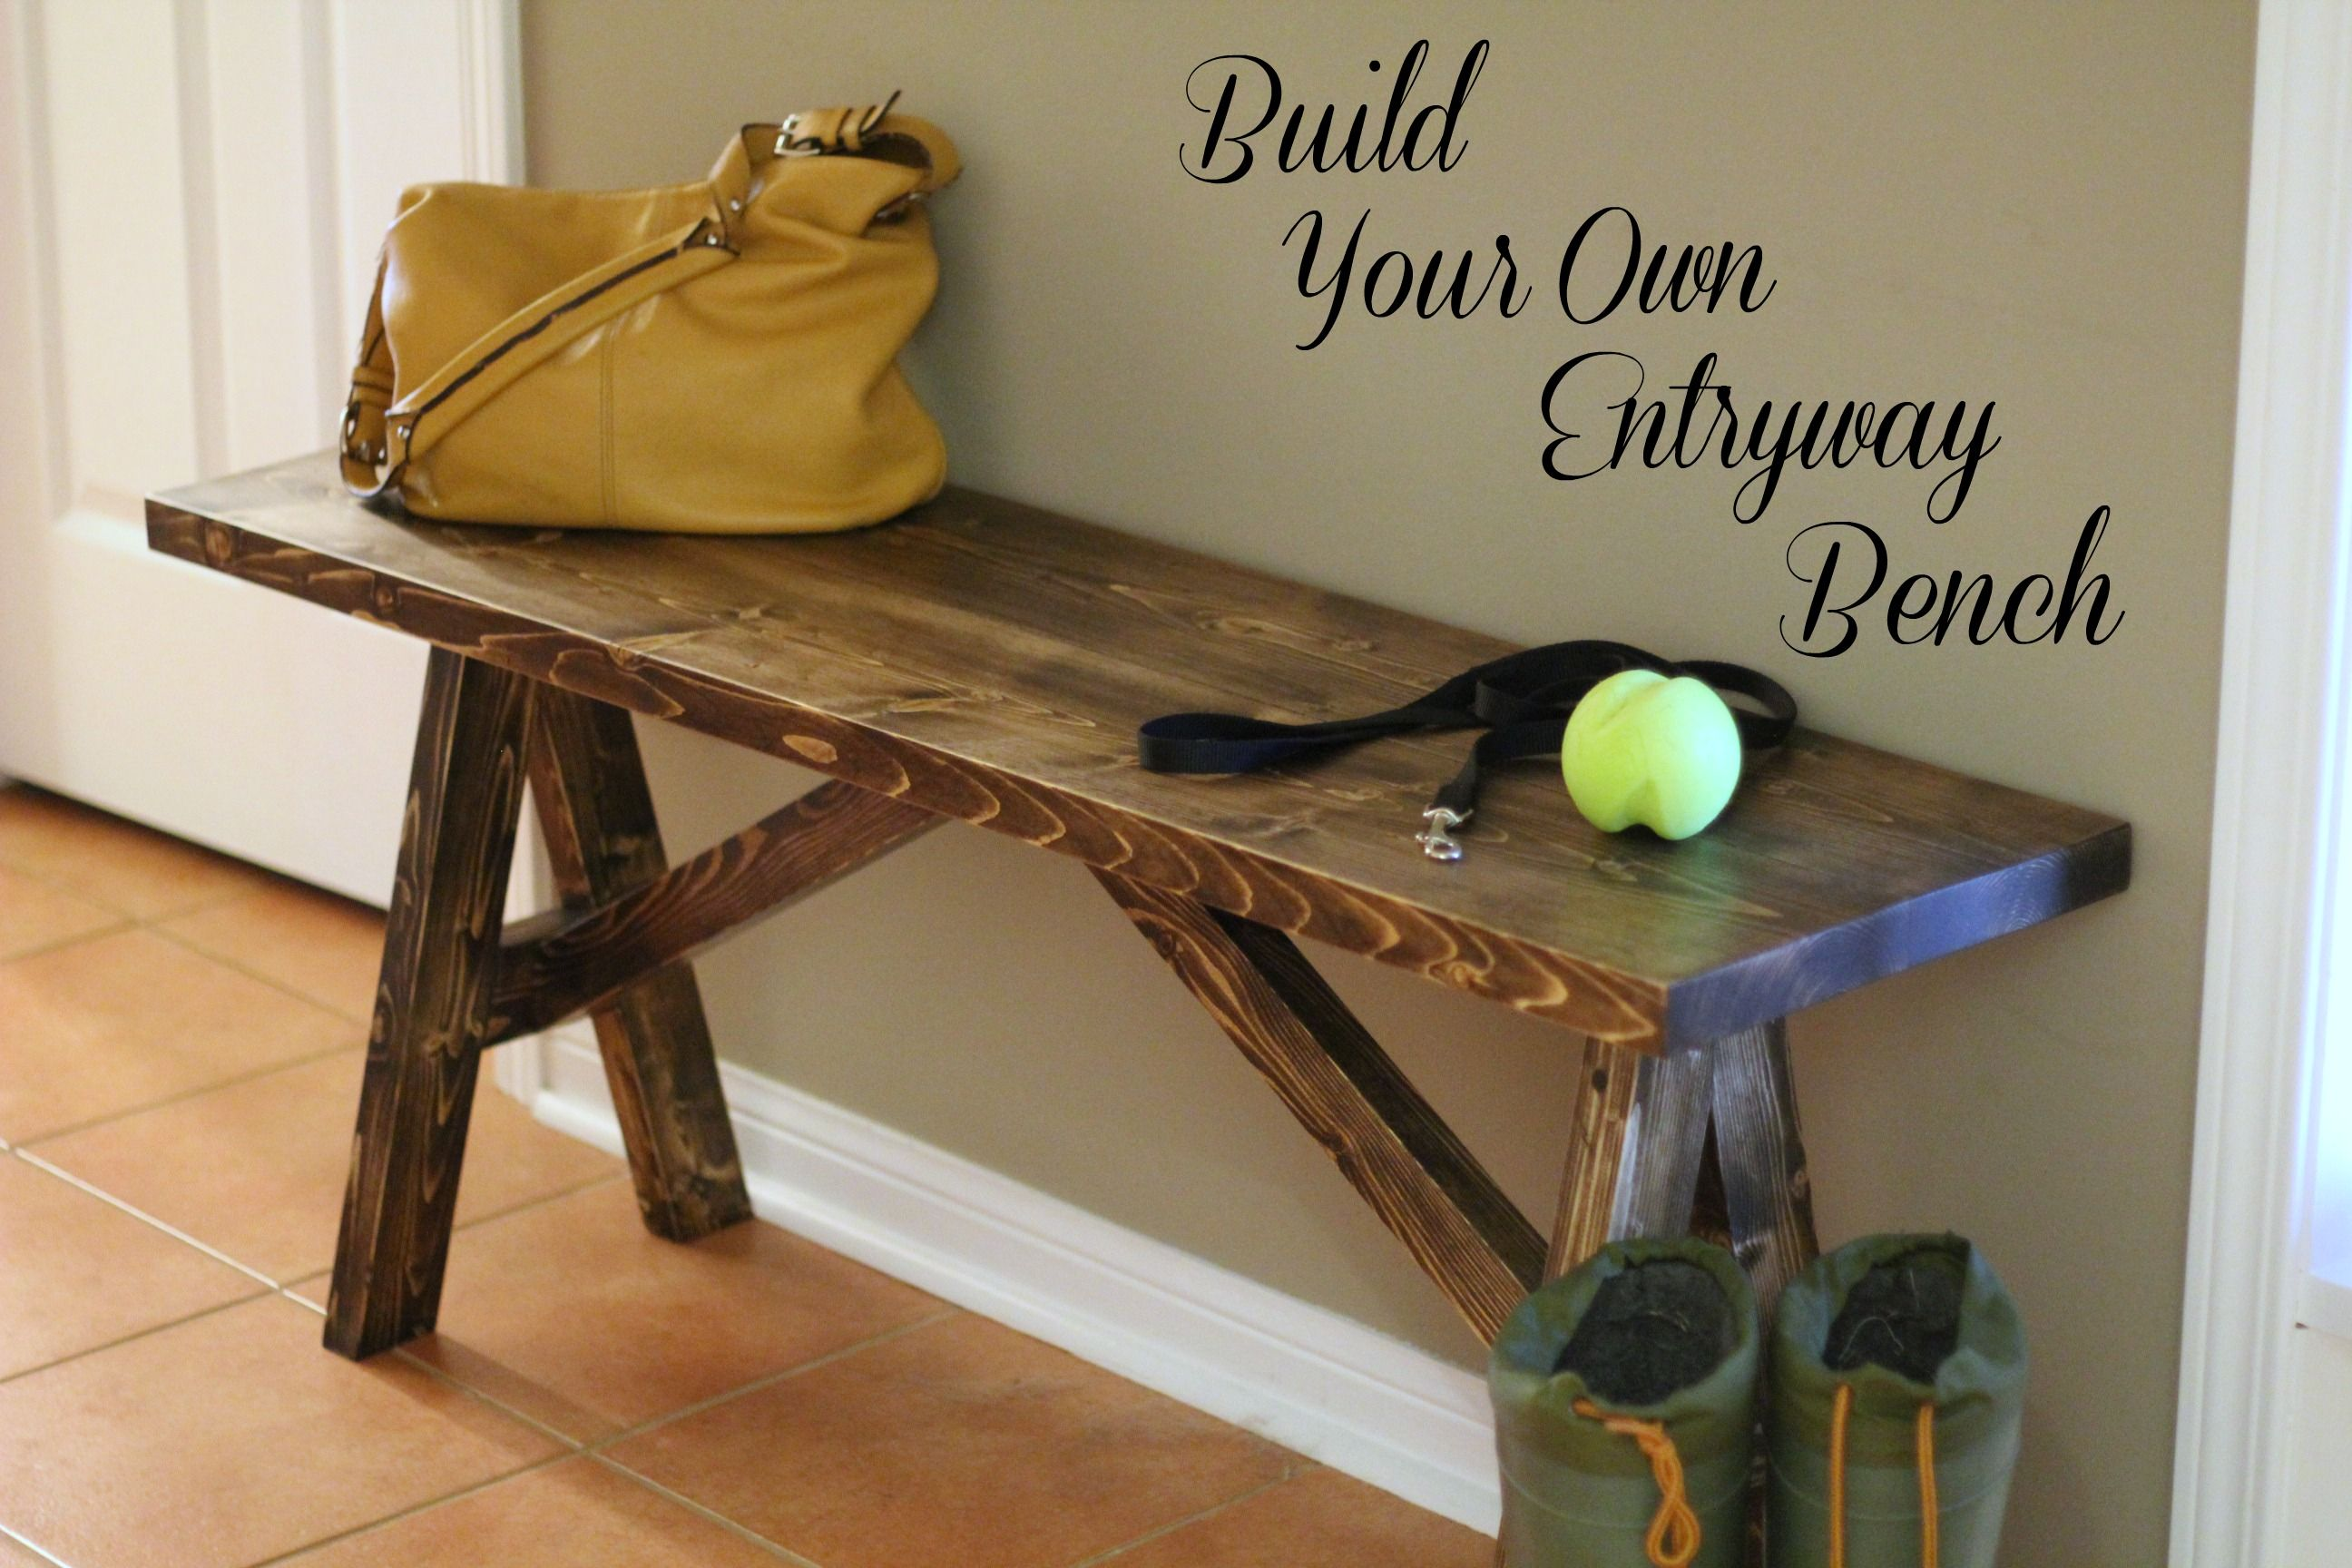 Next DIY project? Build your own entryway bench Entryway